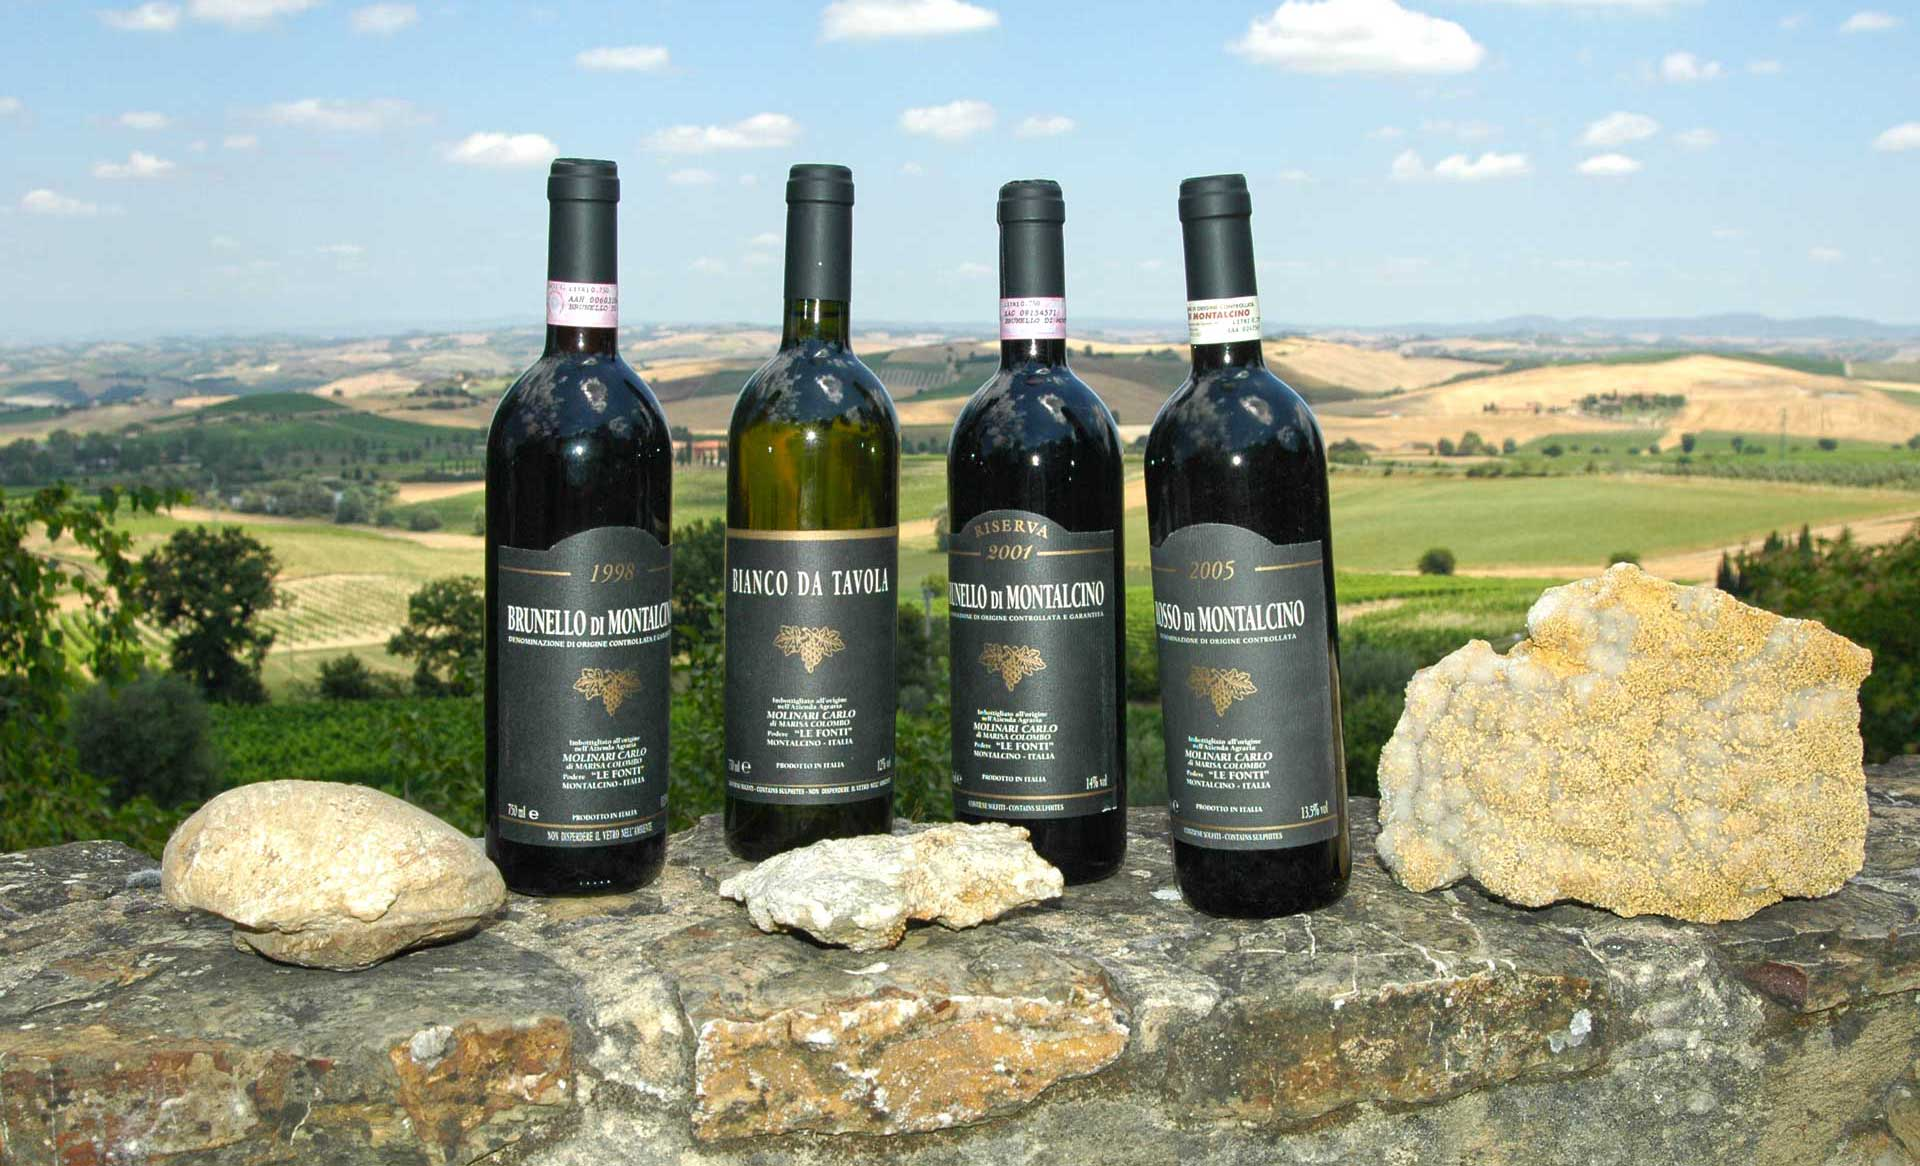 Wines ... The unique taste of Brunello di Montalcino